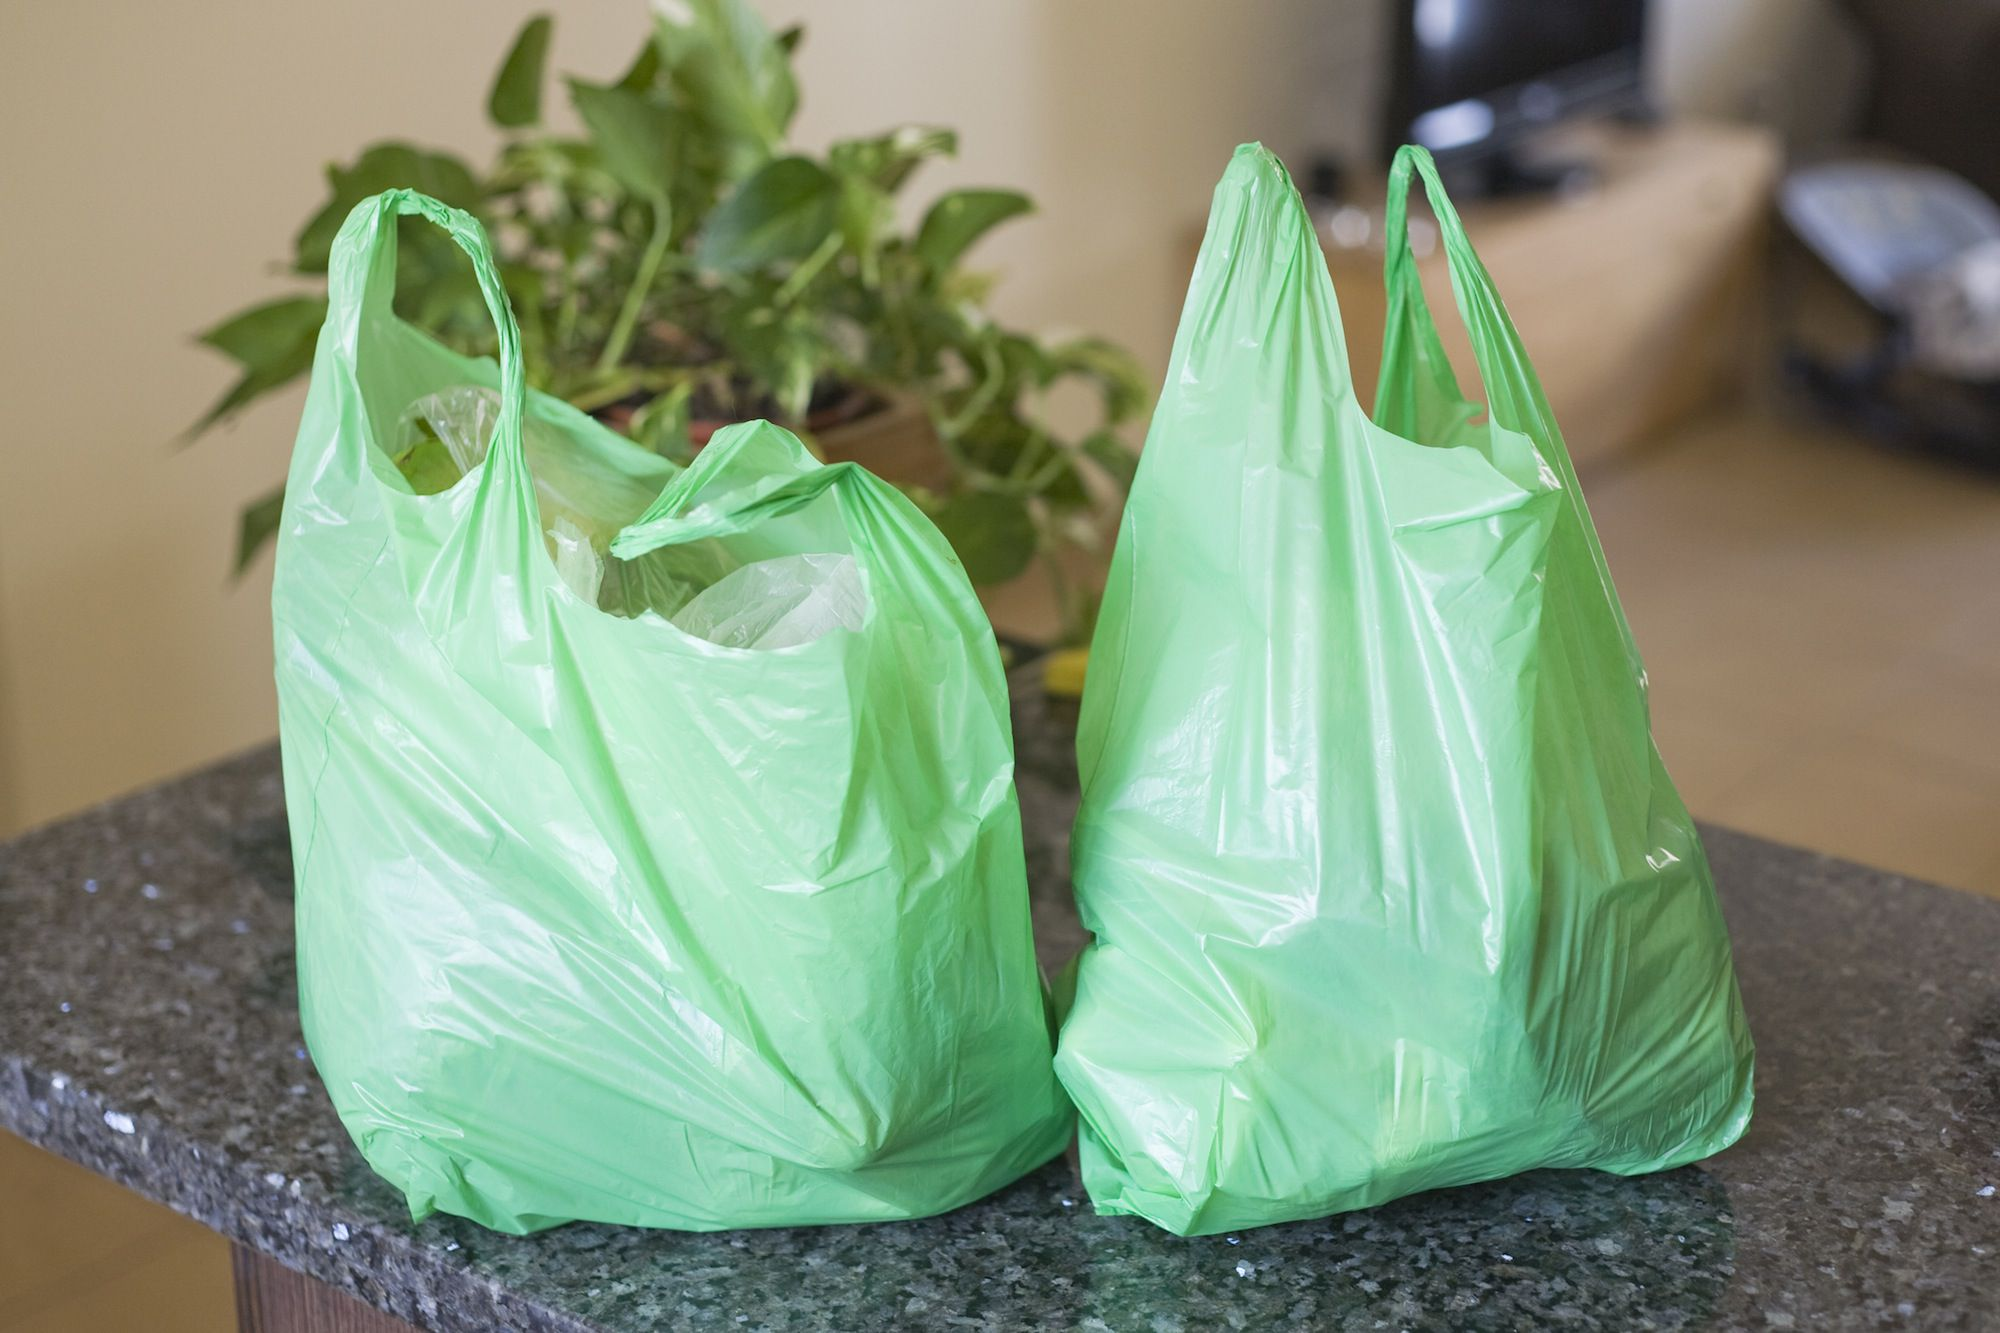 Plastic Bags Problems and Solutions